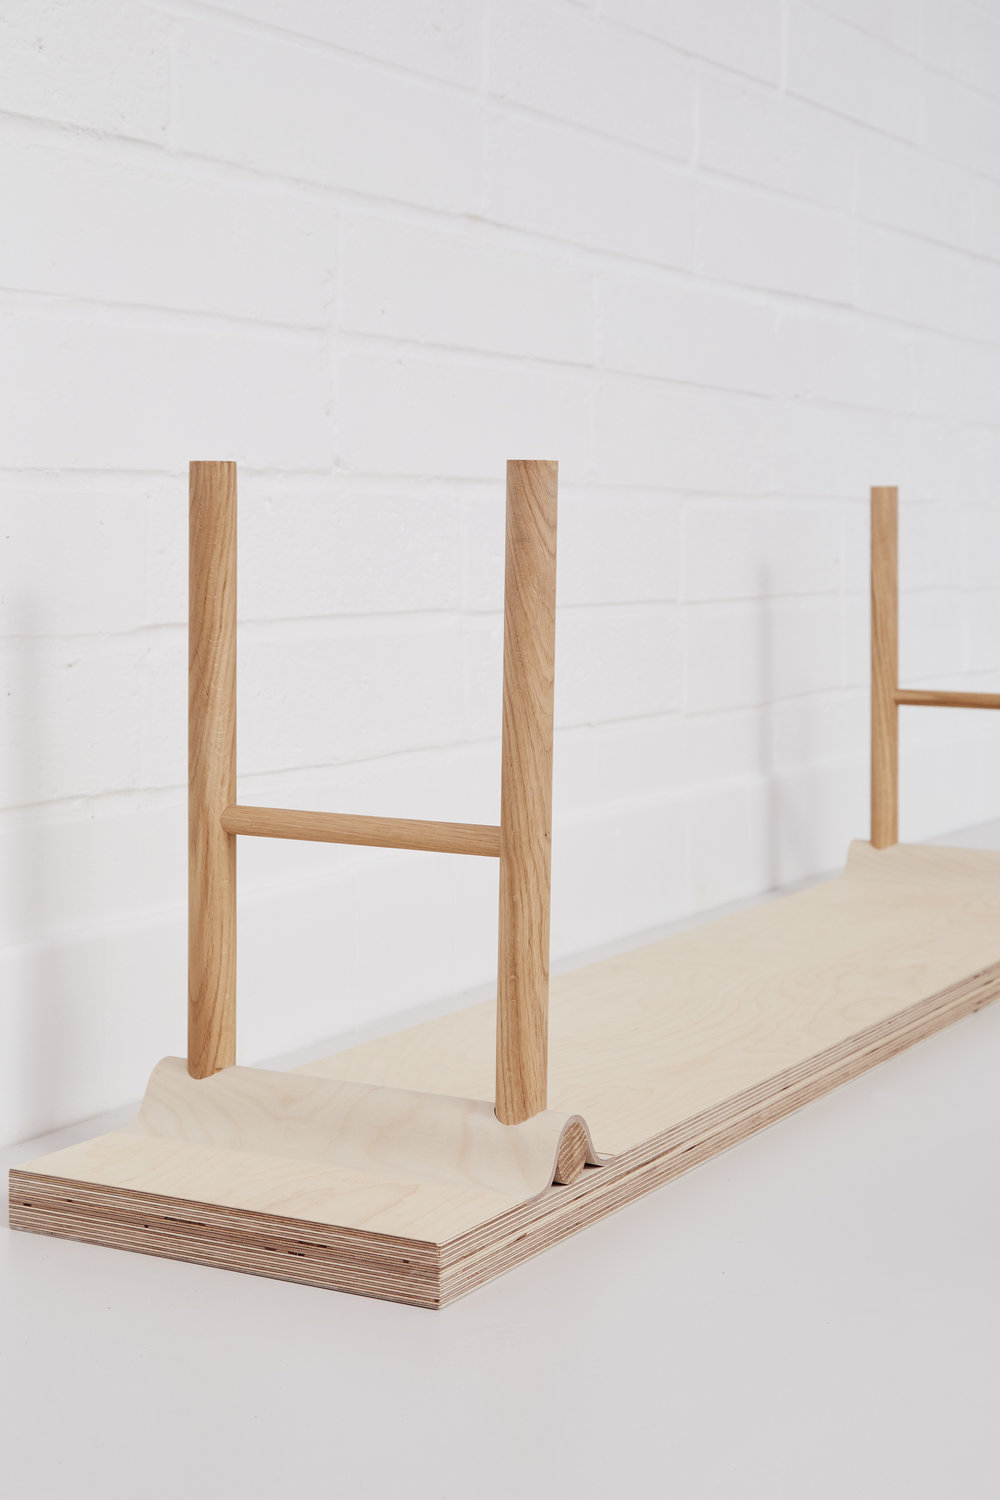 Plywood shelving system by Lozi